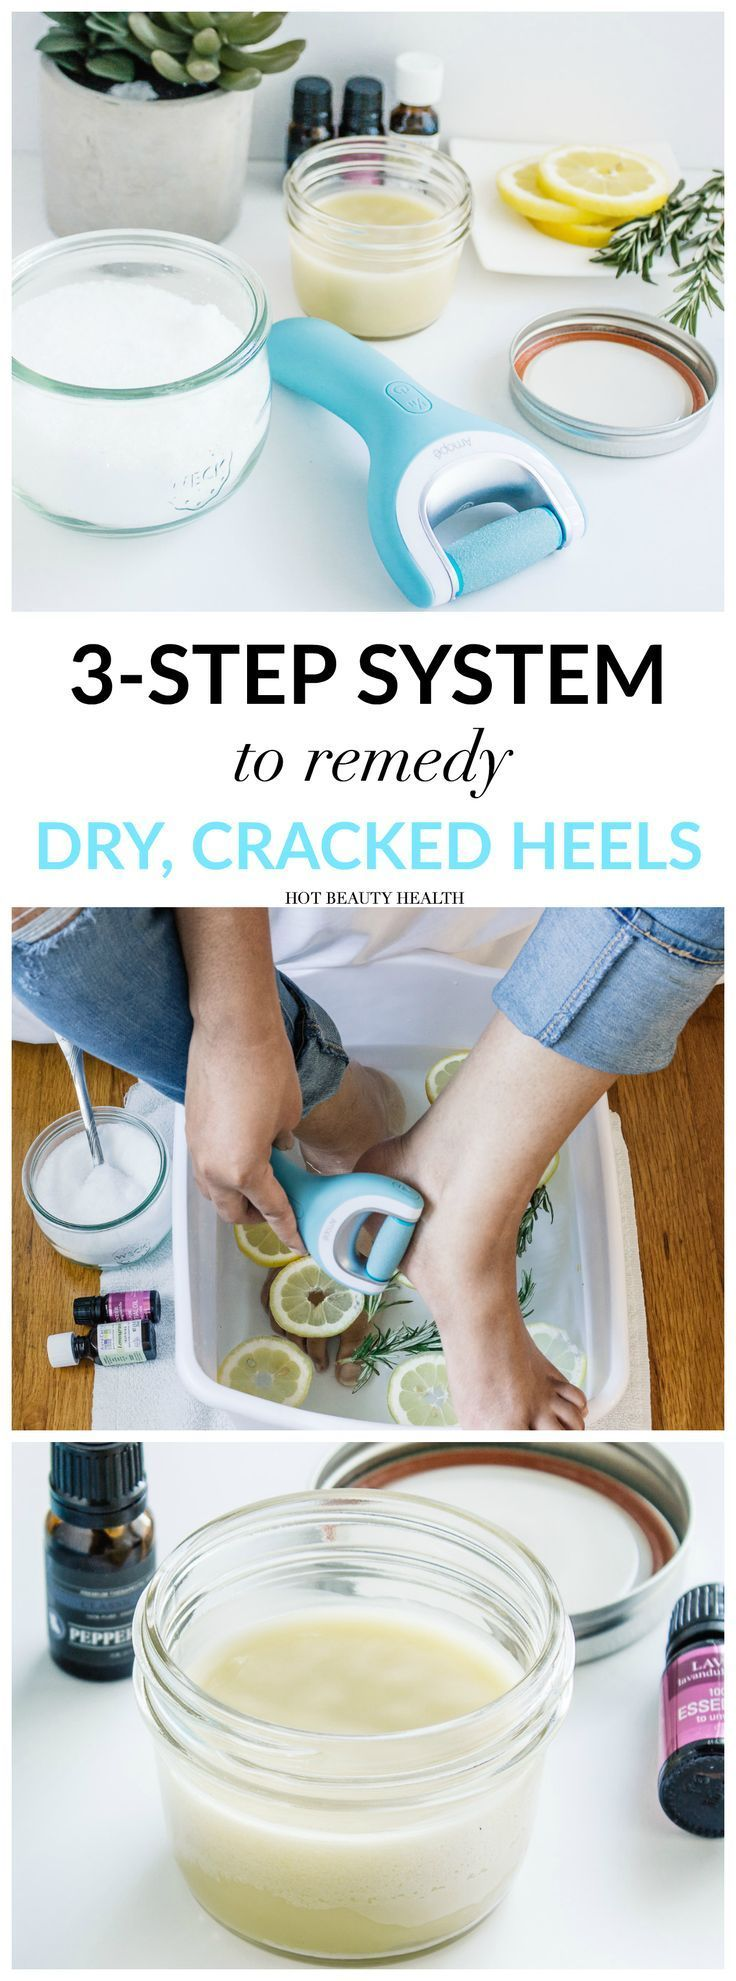 Get your dry, cracked feet holiday ready for heels and open toe shoes using my diy beauty recipes and with Amopé Pedi Perfect foot file. Makes the perfect Christmas gift for him or her!